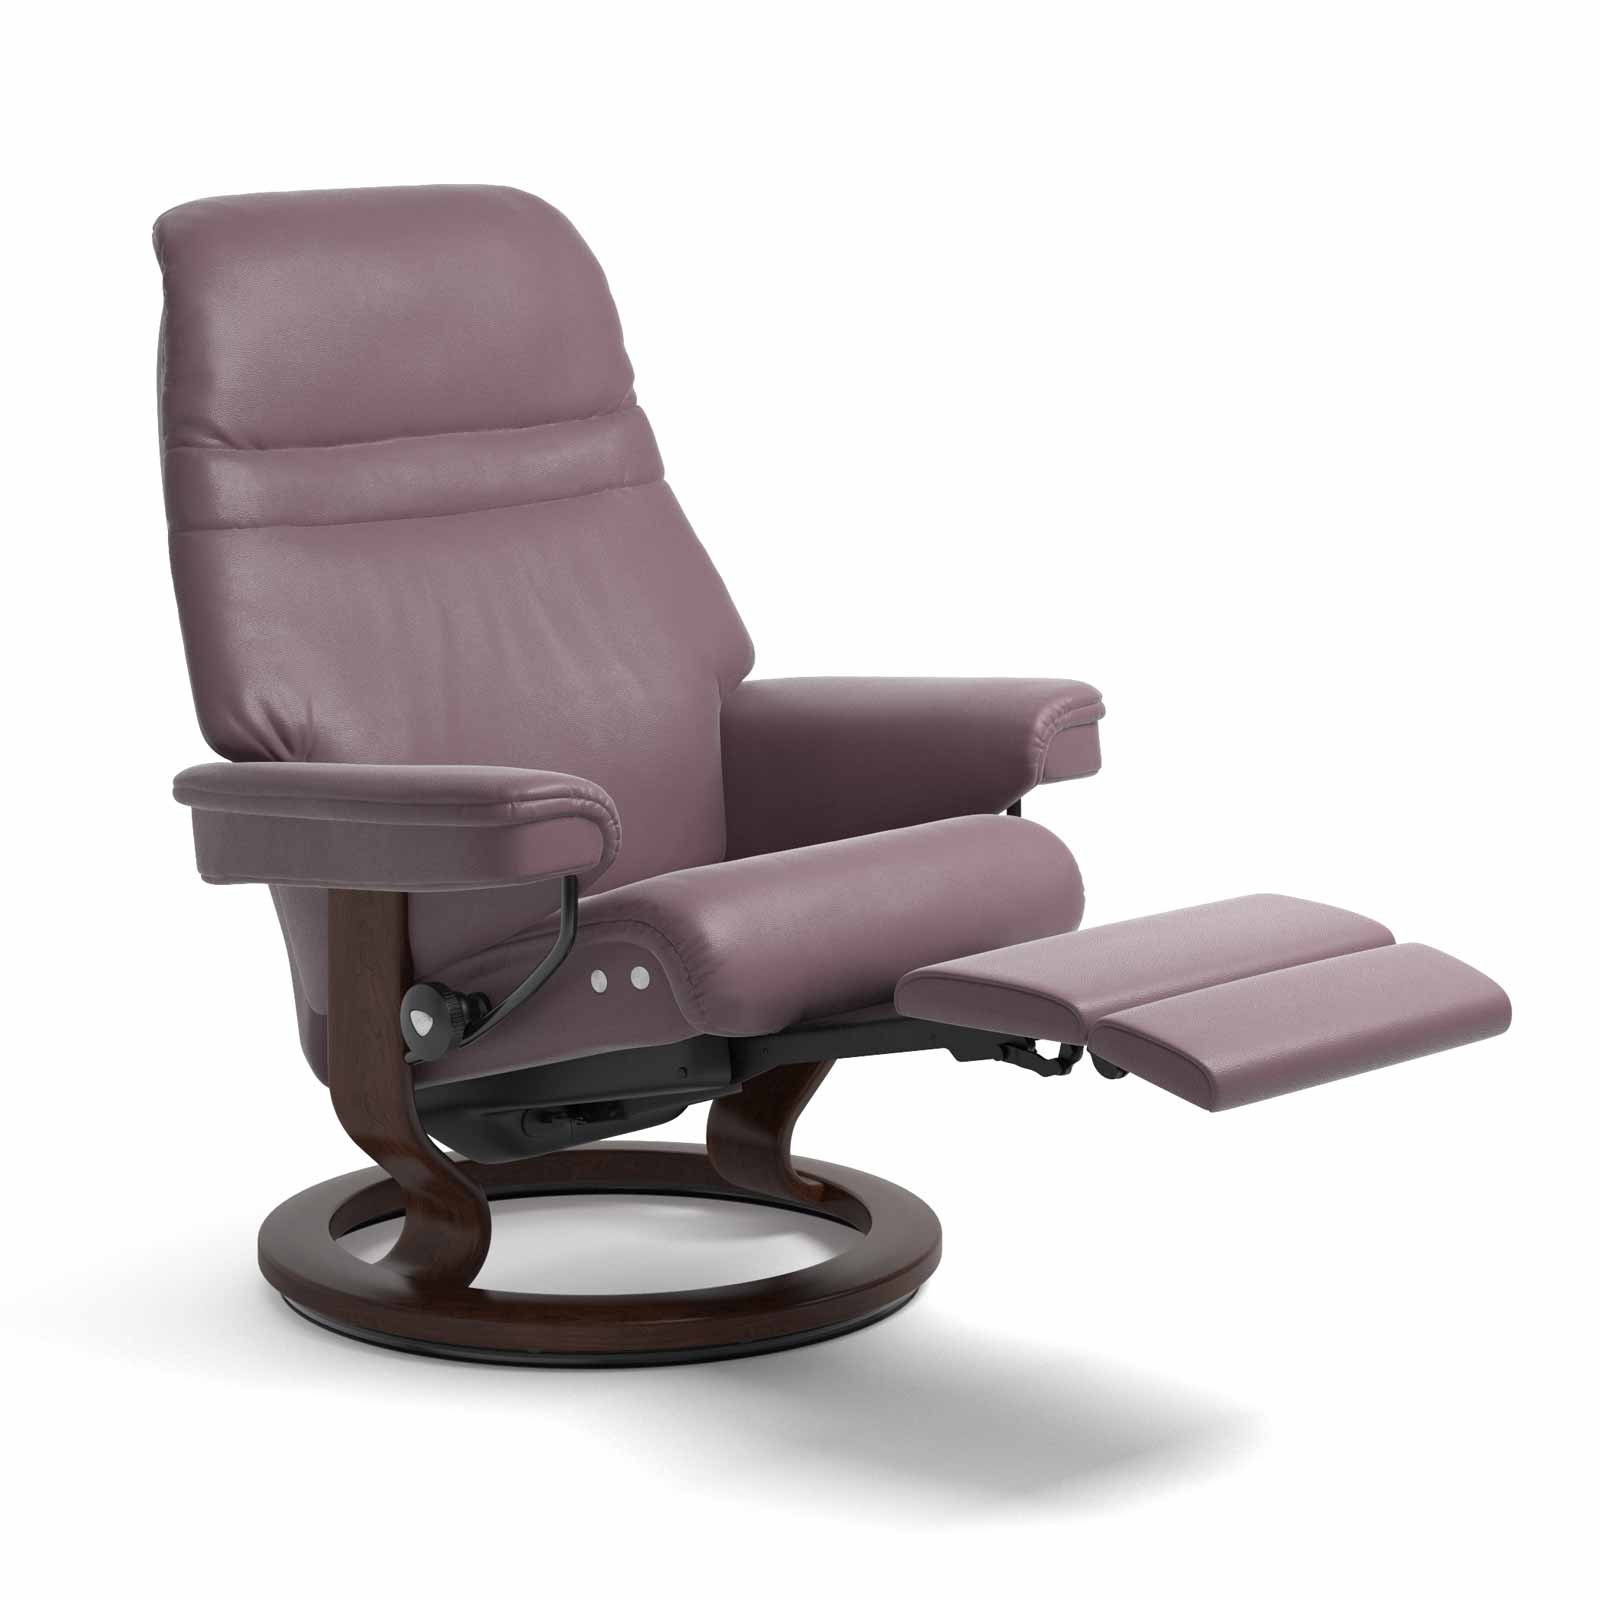 sessel sunrise legcomfort paloma purple plum stressless. Black Bedroom Furniture Sets. Home Design Ideas